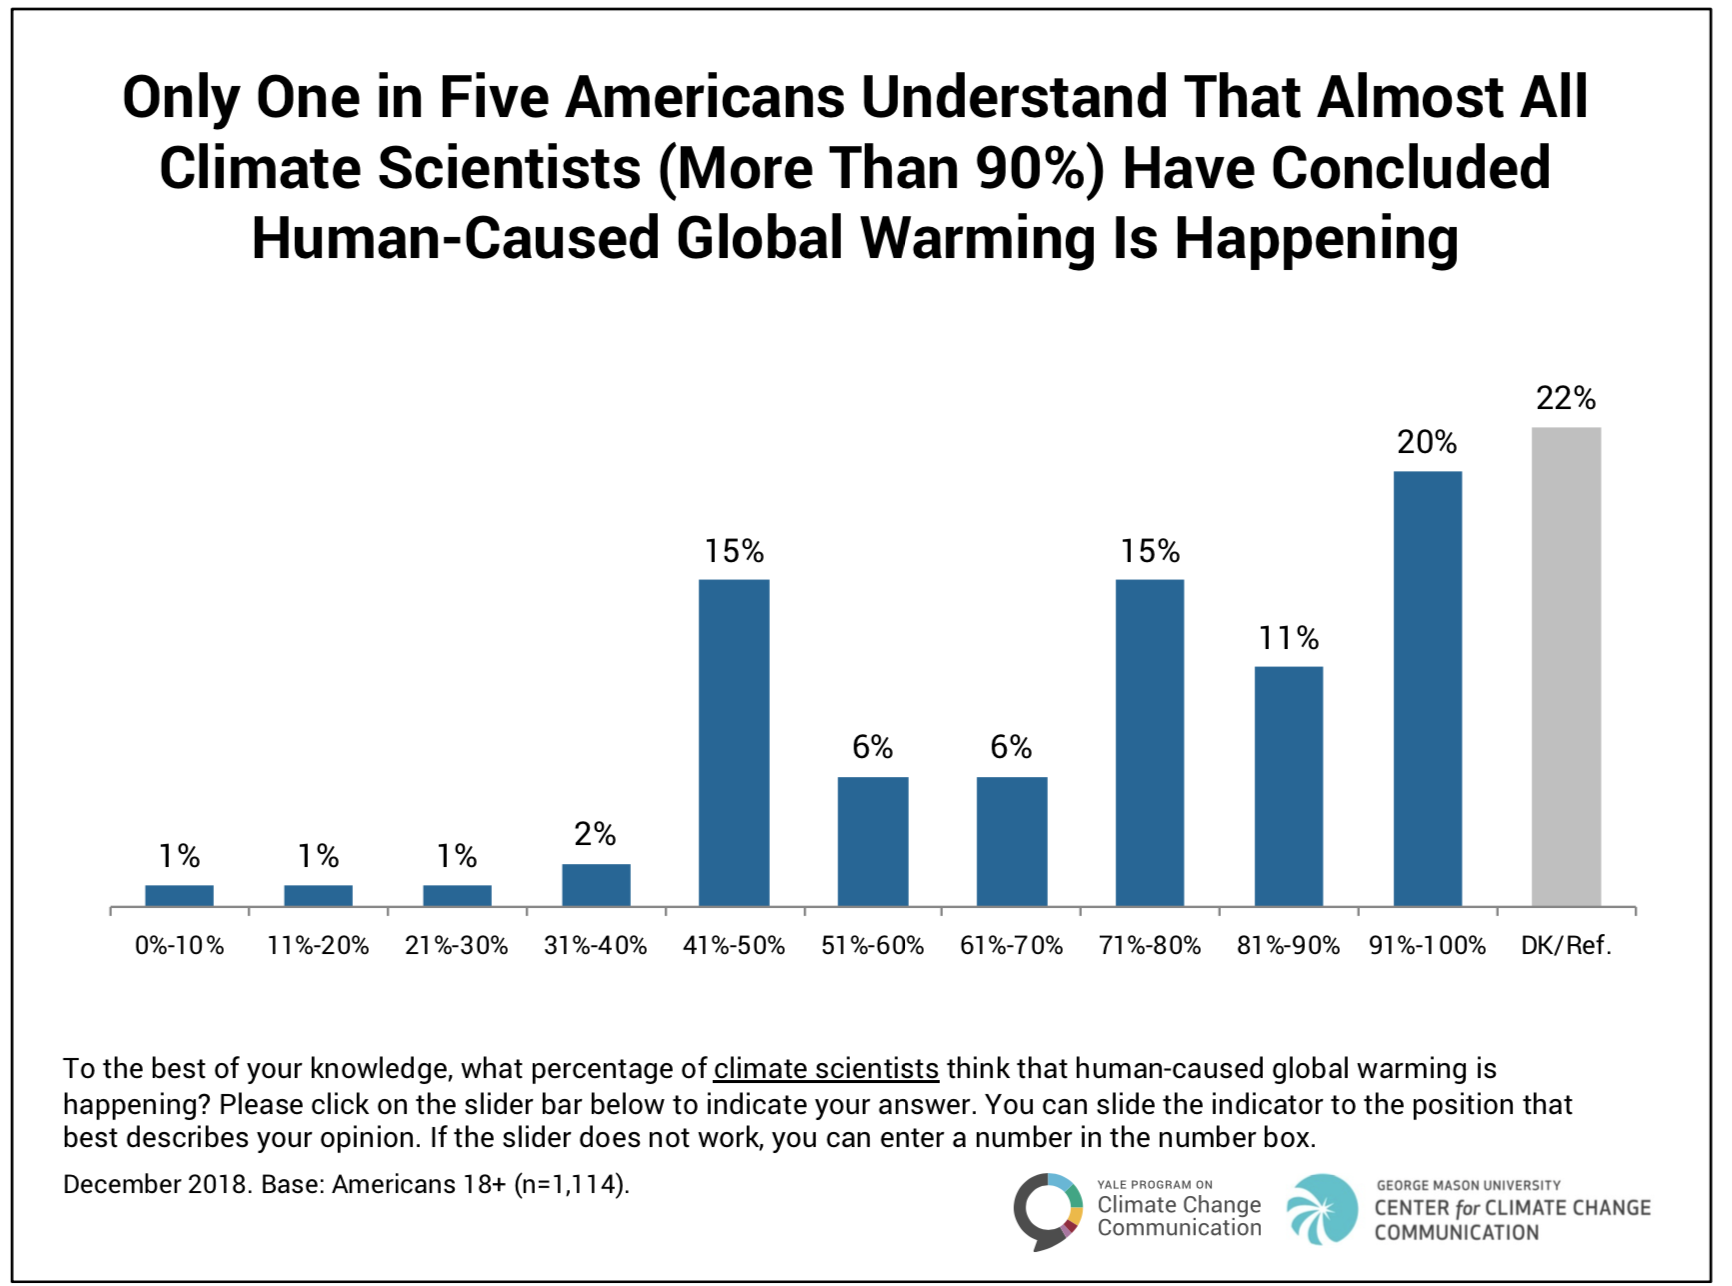 """- """"In sum, even many people who understand climate change as the serious threat that it is currently misperceive the extent of the scientific consensus by a large margin. However, this presents an opportunity for climate change communicators – because existing pro-climate beliefs and attitudes can likely be strengthened and solidified with simple messages about the scientific consensus.""""Abel Gustafson & Matthew Goldberg, YPCCC CLIMATE NOTE · Oct 18, 2018"""